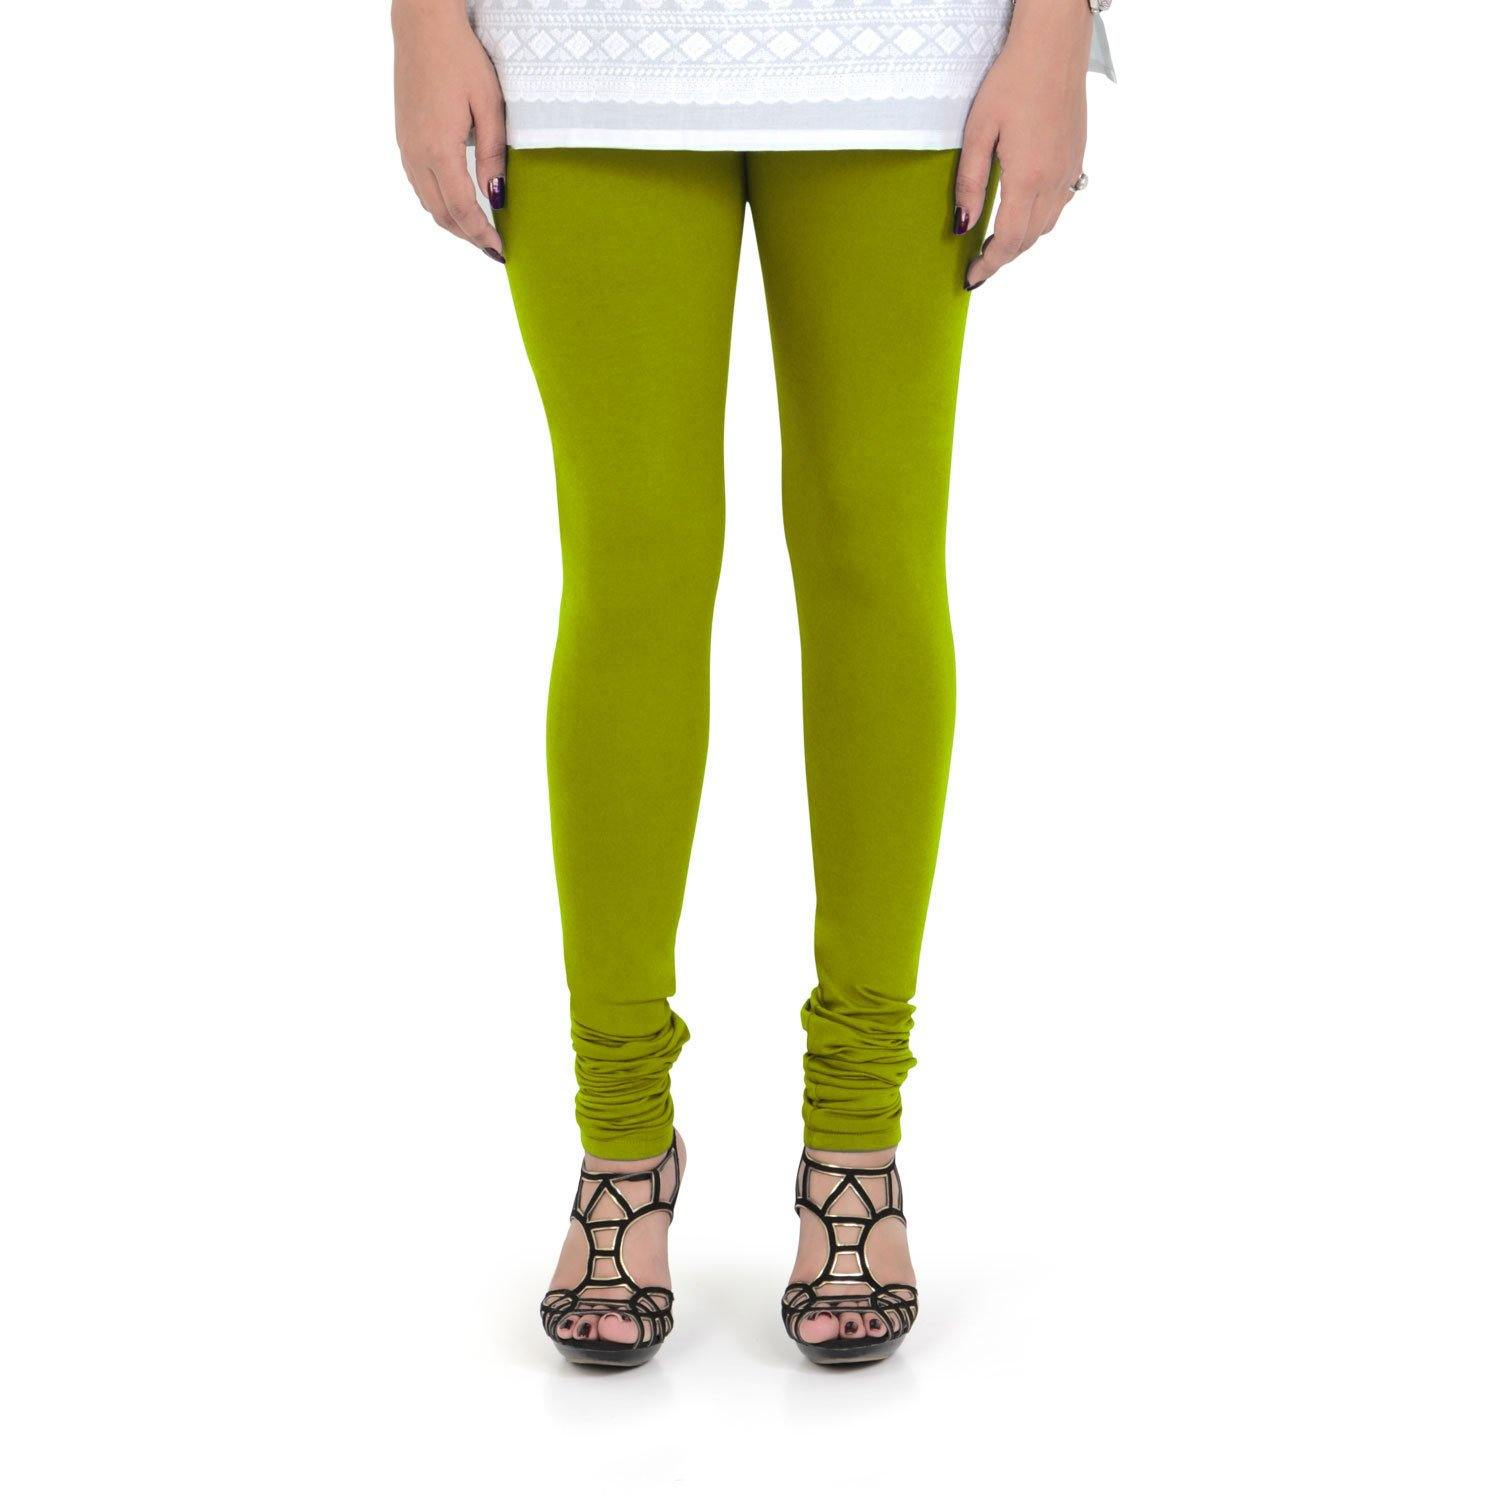 Vami Women's Cotton Stretchable Churidar Legging - Goose Berry